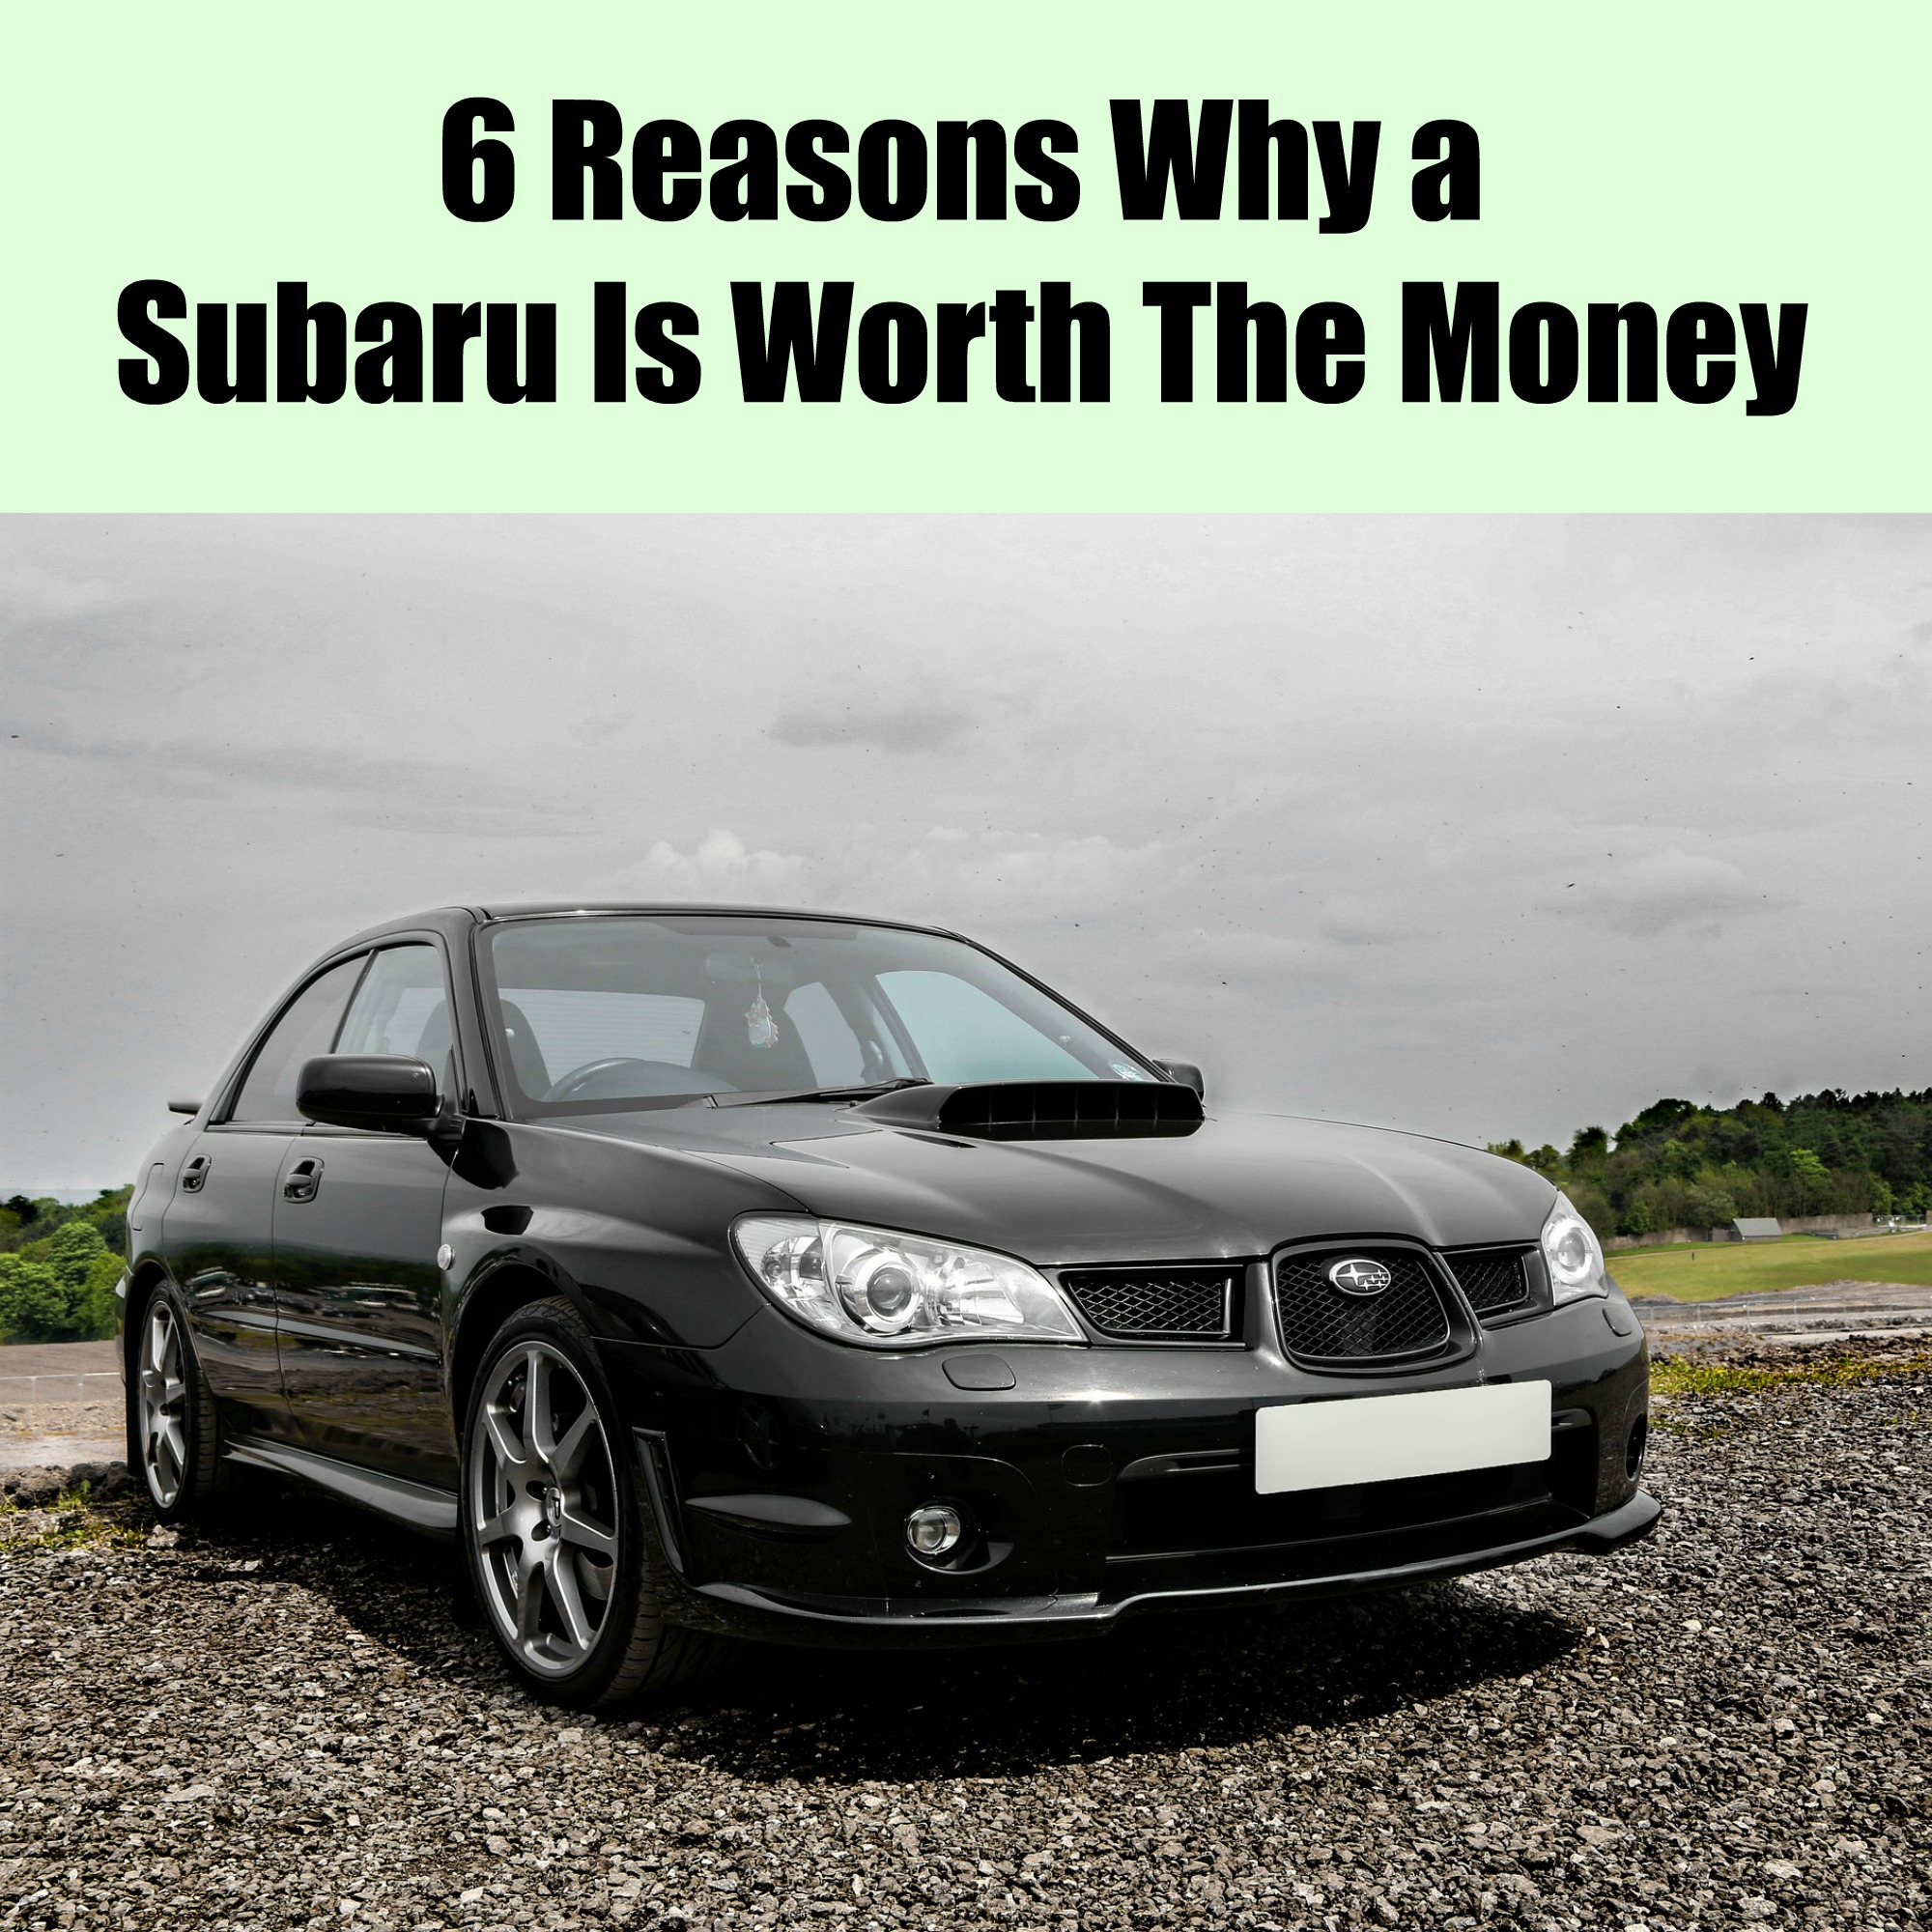 6 Reasons Why A Subaru Is Worth The Money